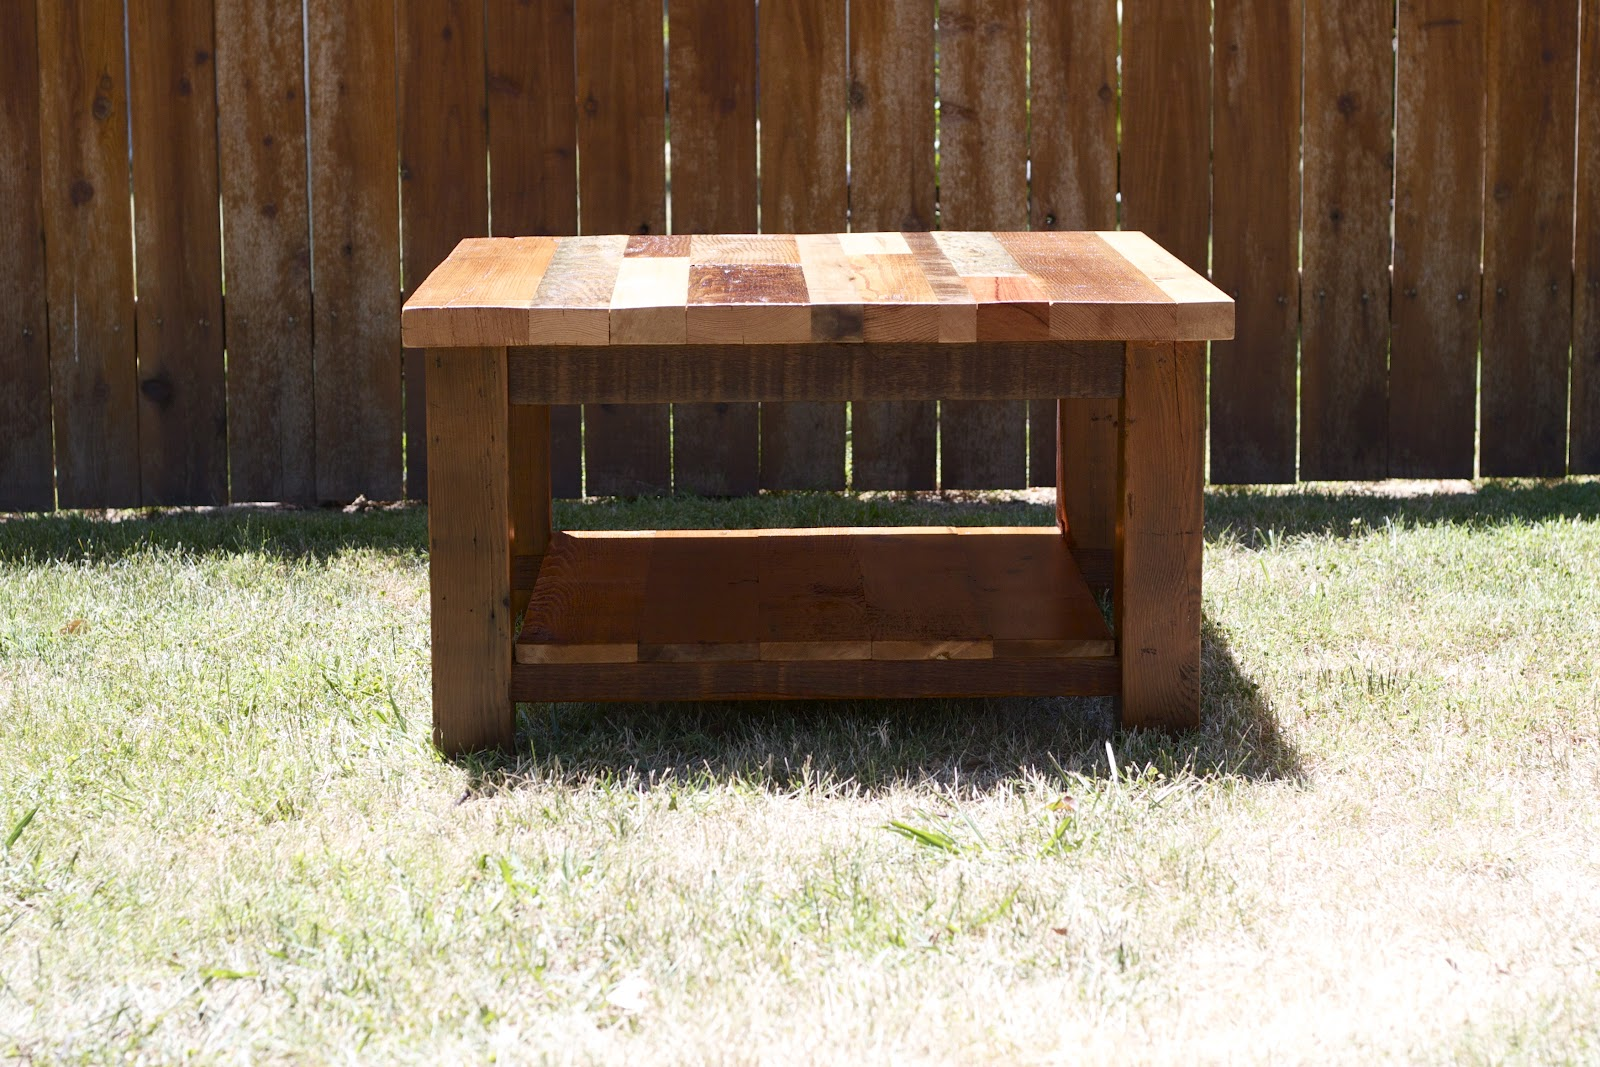 Arbor Exchange | Reclaimed Wood Furniture: Square Patchwork Coffee Table  With Bottom Shelf